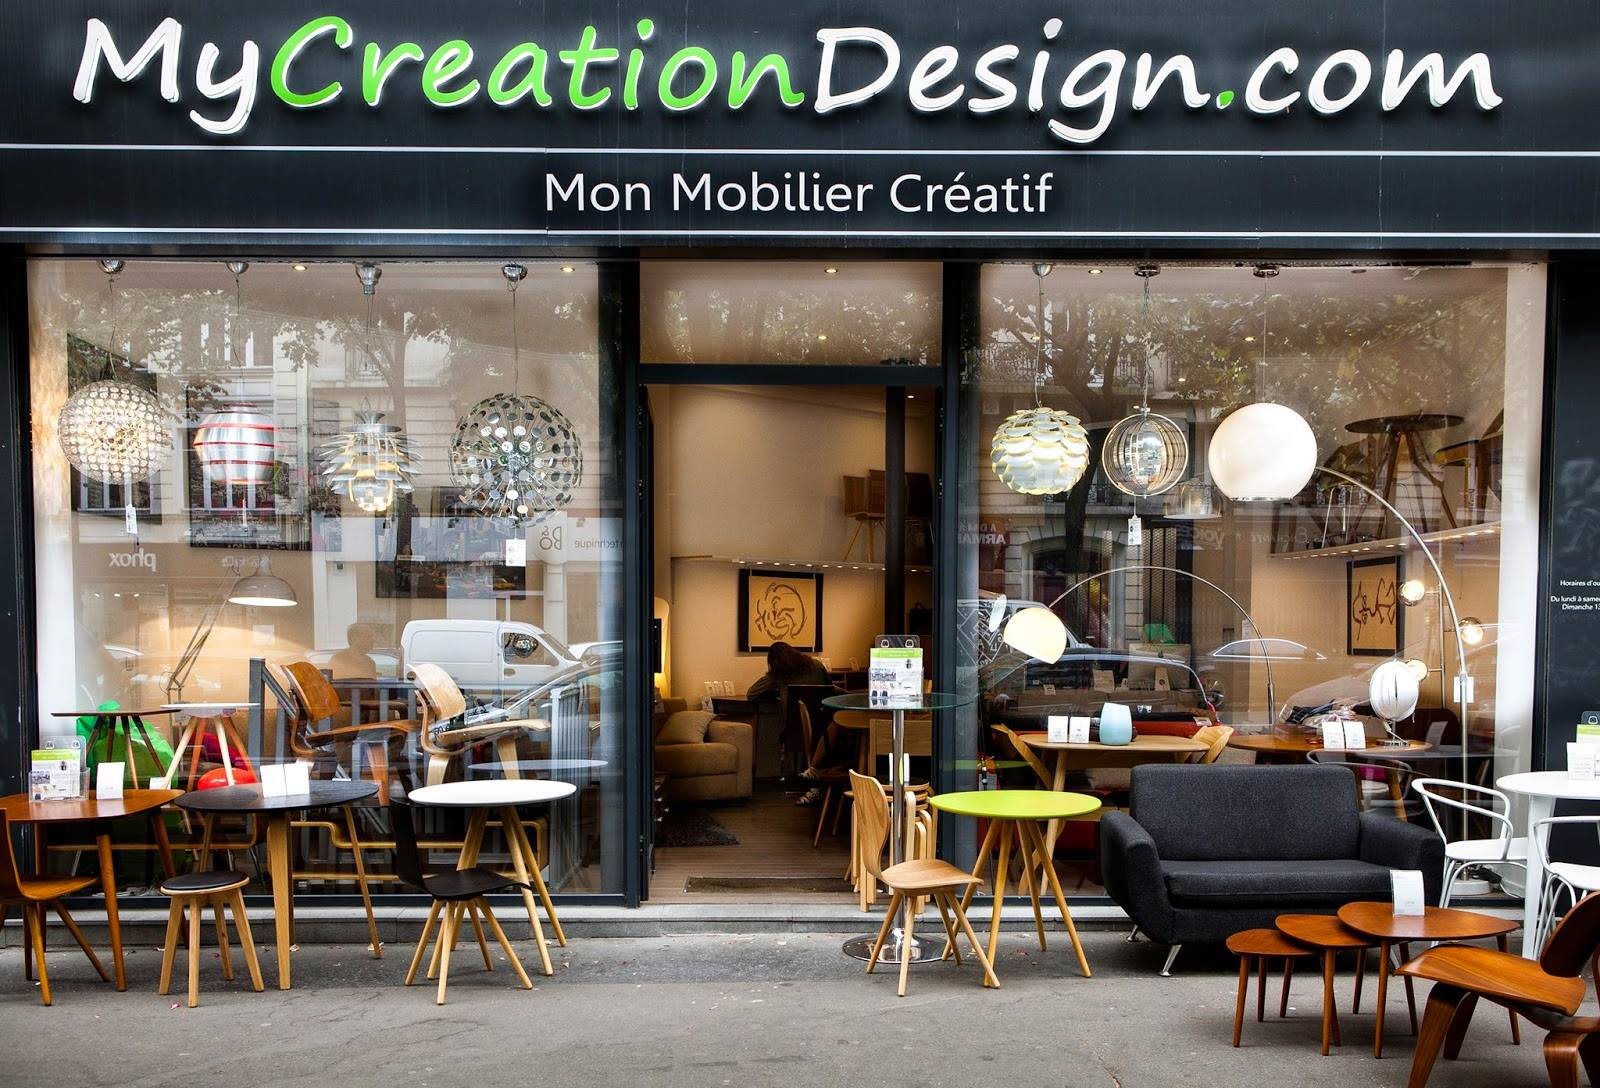 Table Extensible Exterieur Génial Les Showrooms Mycreationdesign My Creation Design